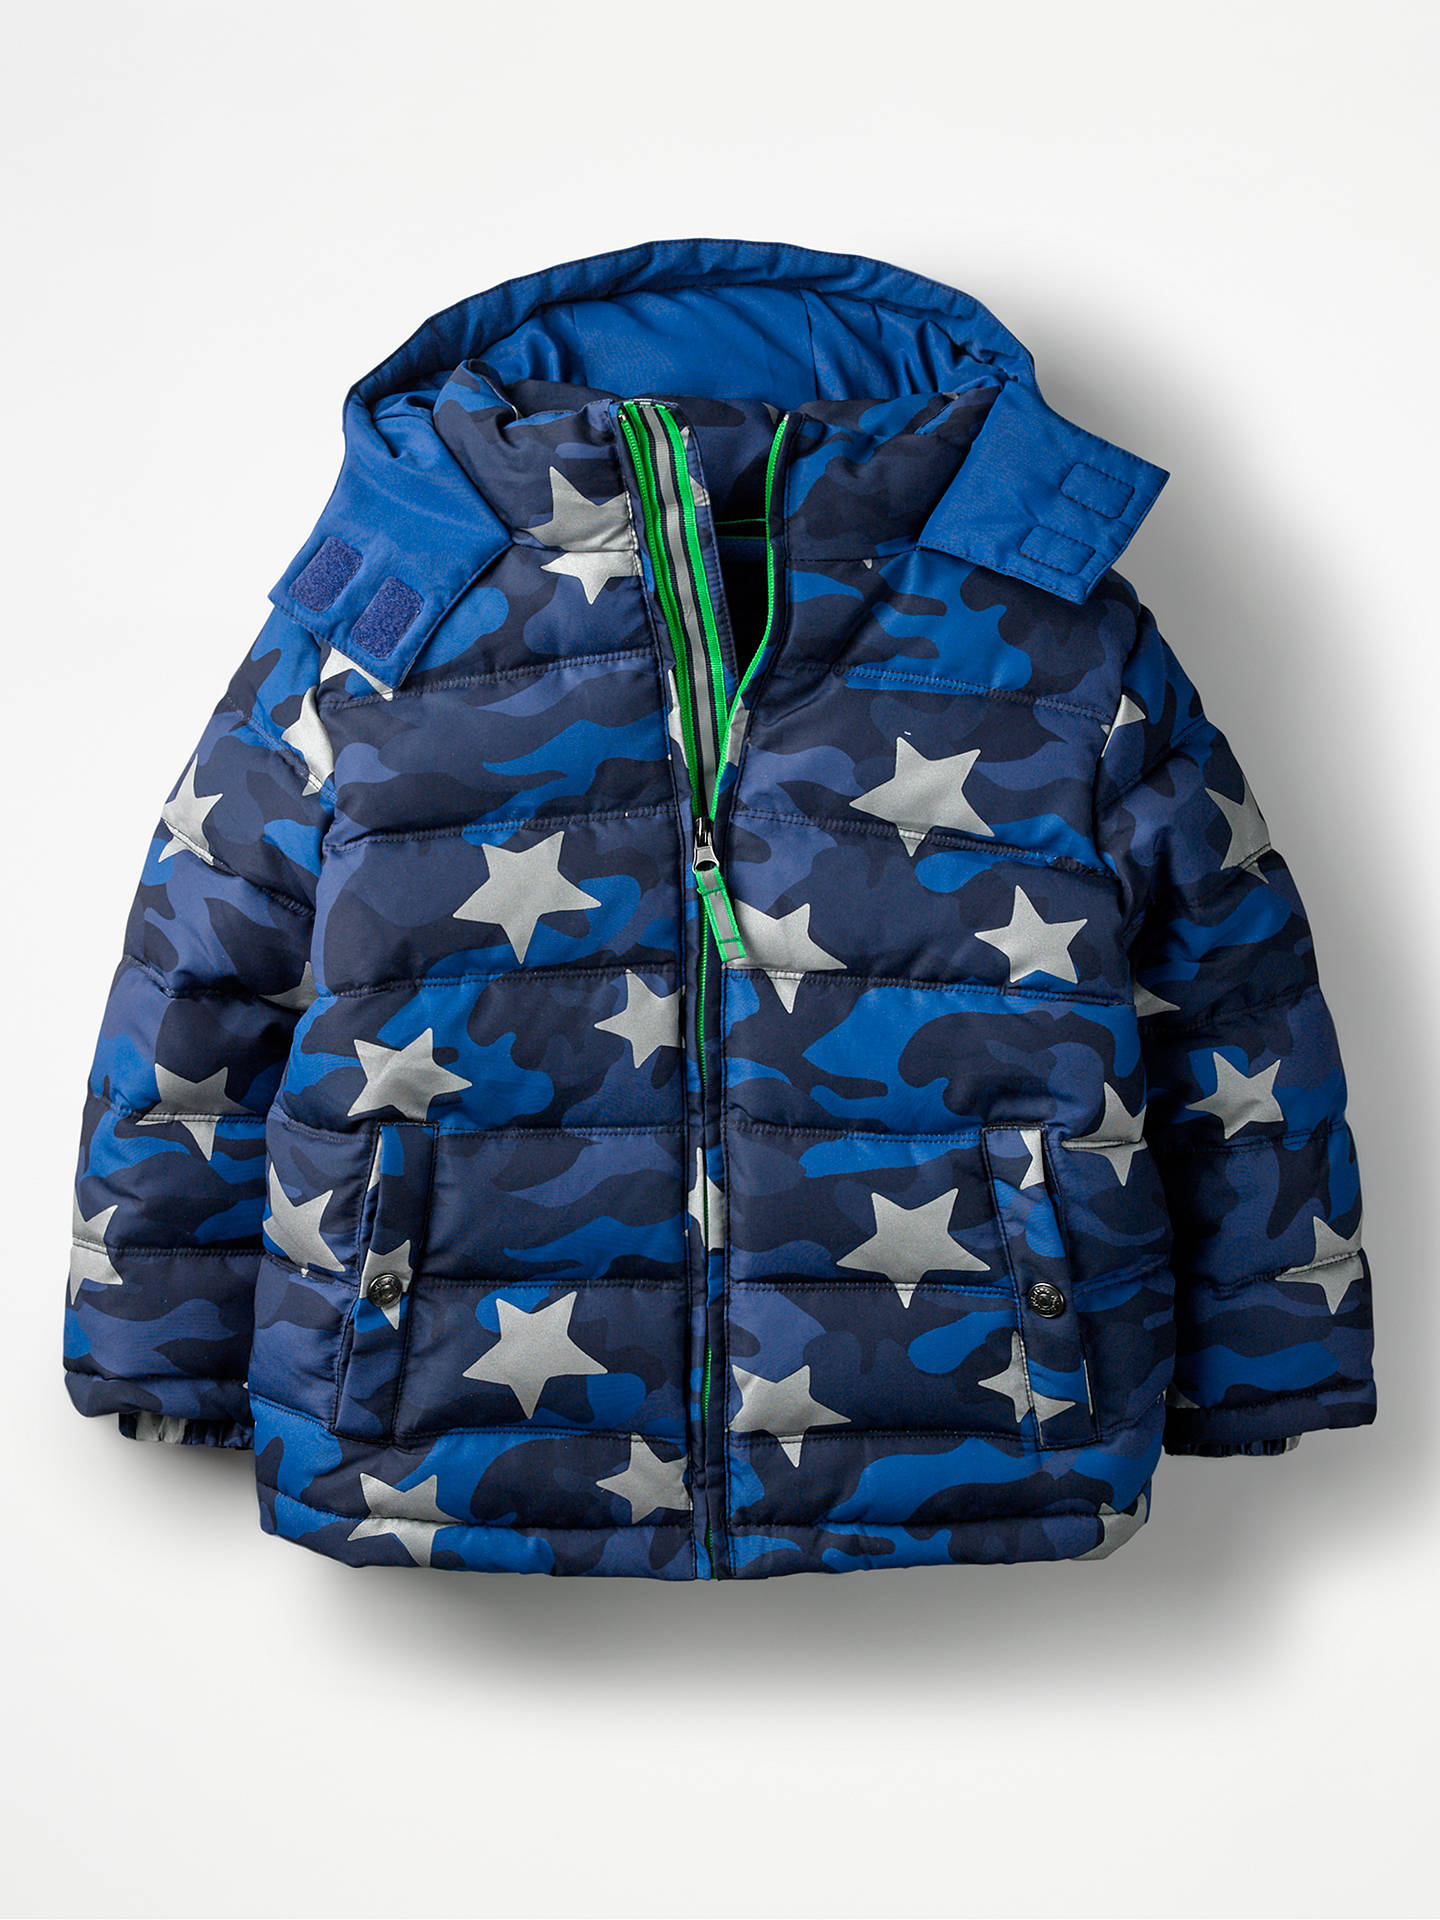 f560d3e0ea491 Mini Boden Boys' Star Print Padded Jacket, Navy at John Lewis & Partners